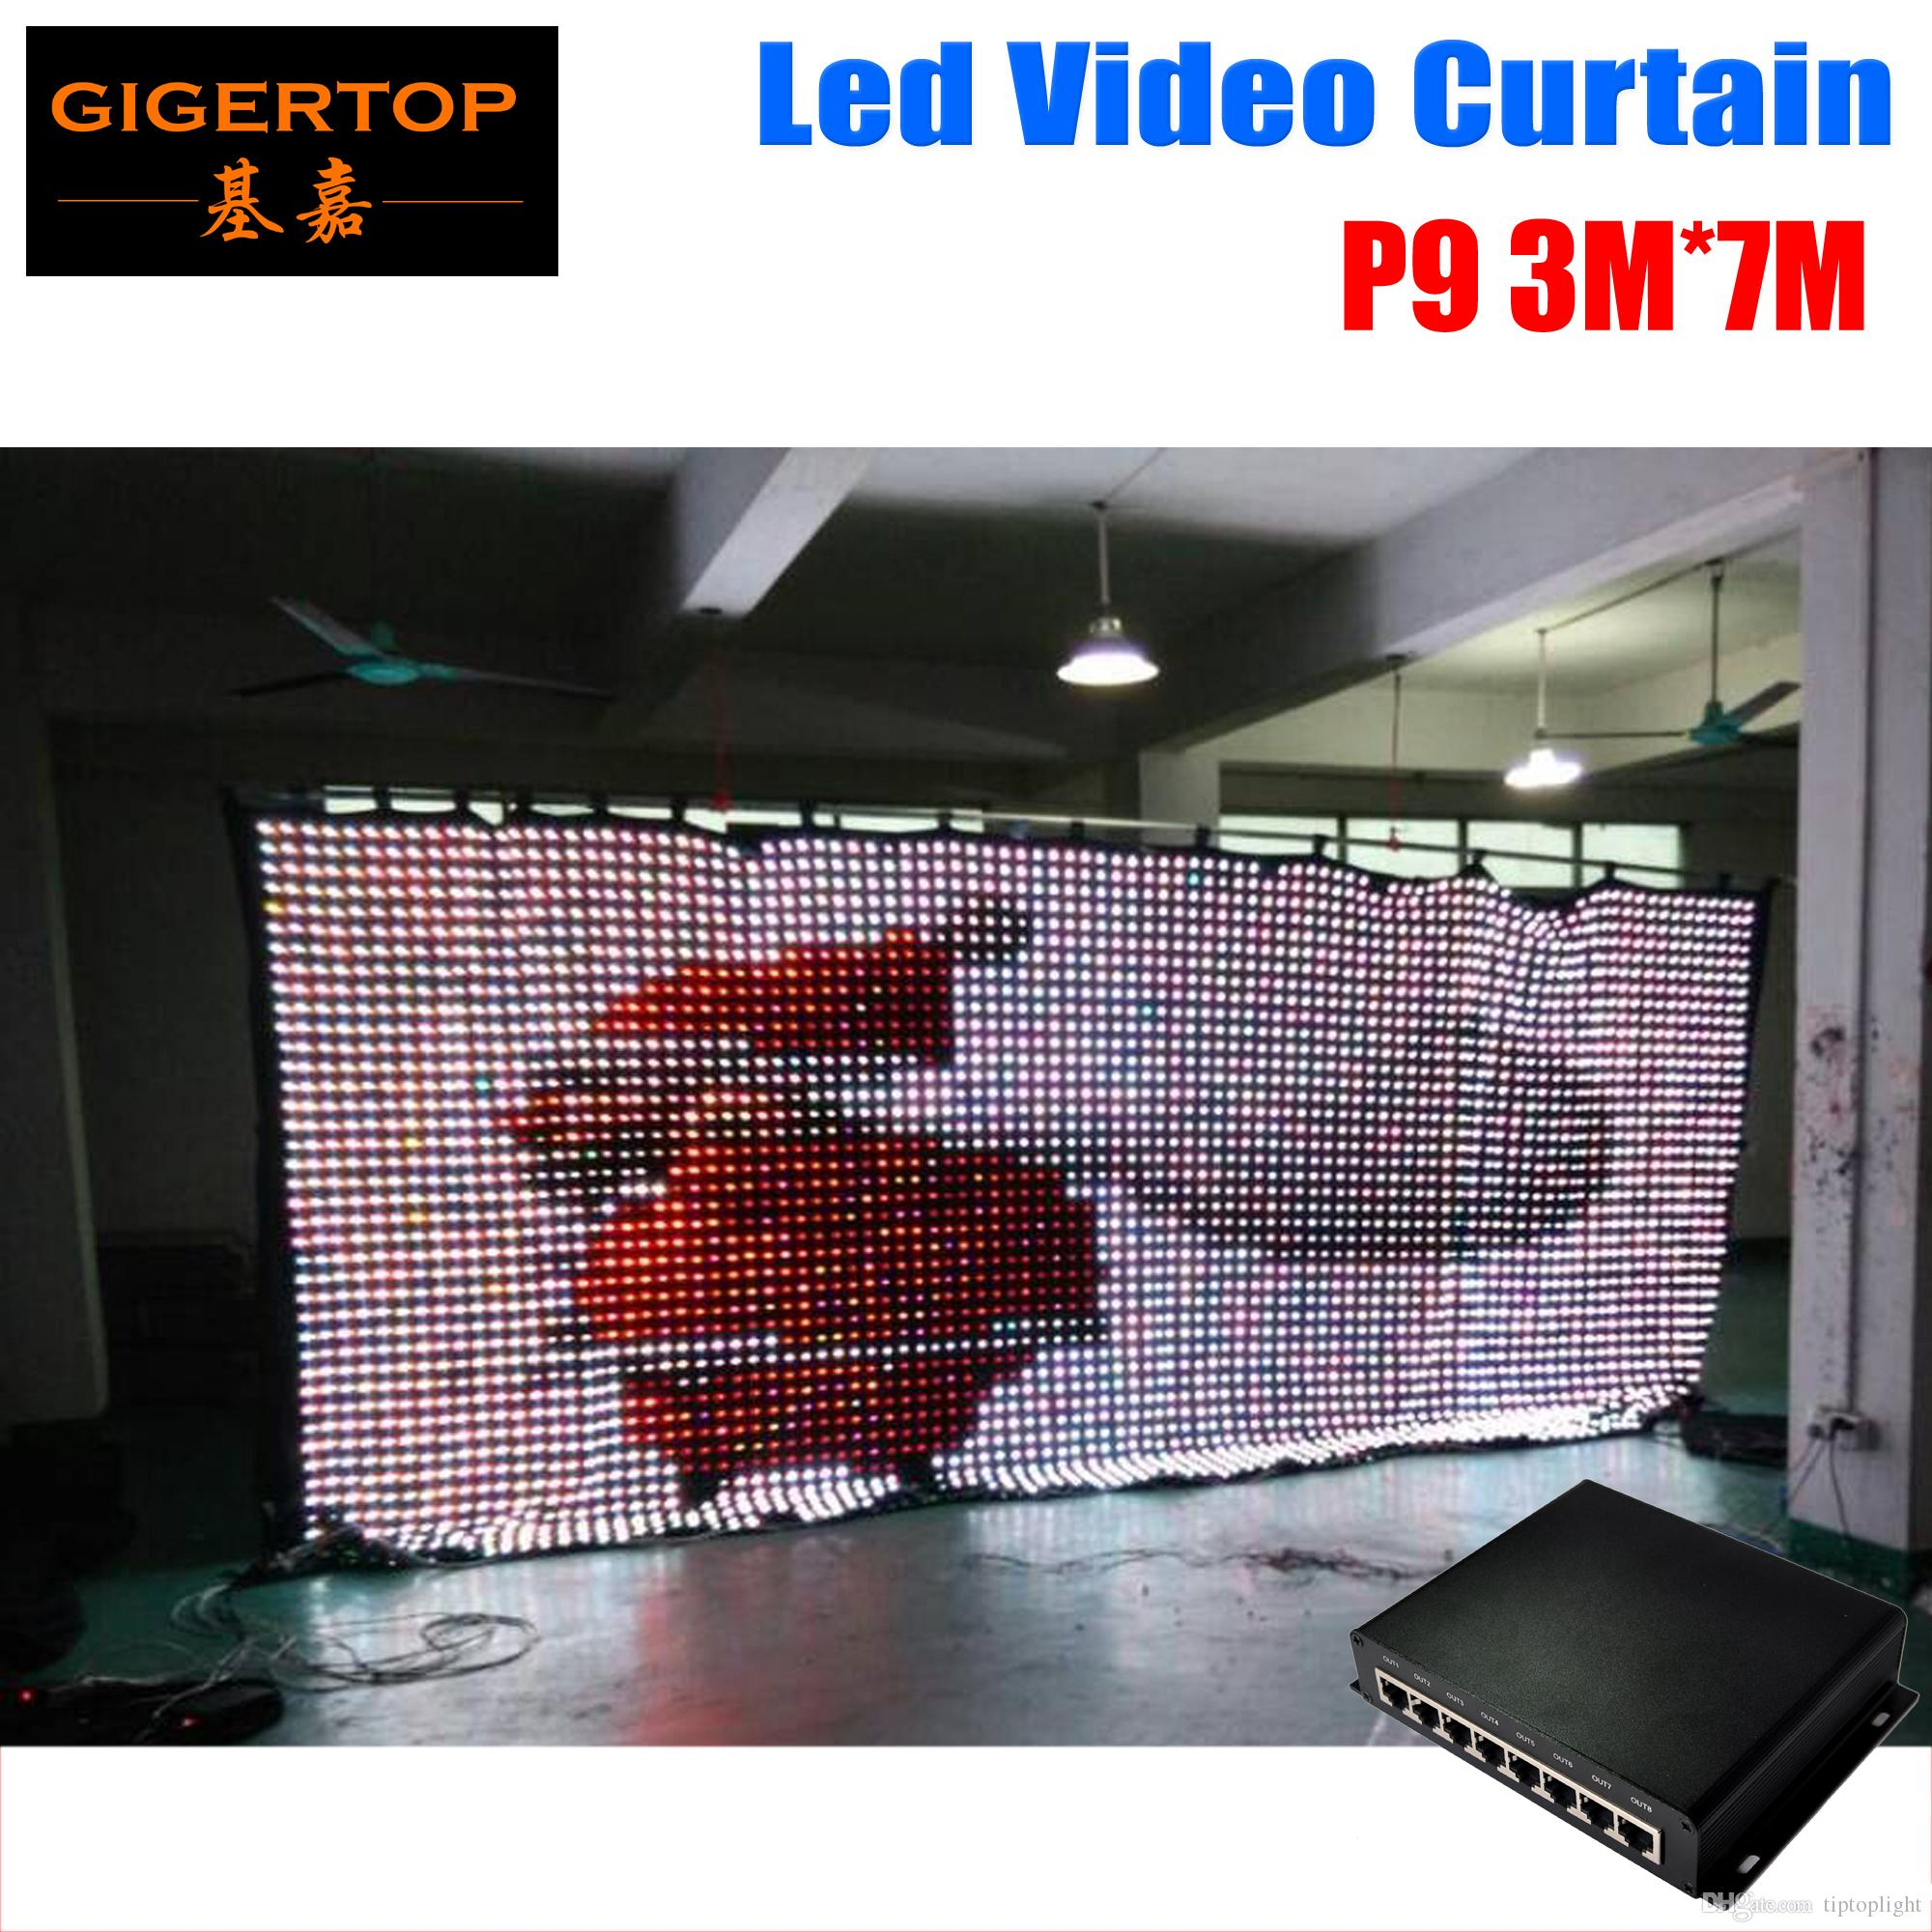 P9 3M*7M LED Vison Curtain With PC Mode Controller Tricolor LED Video Curtain for DJ Wedding Backdrops 90V-240V